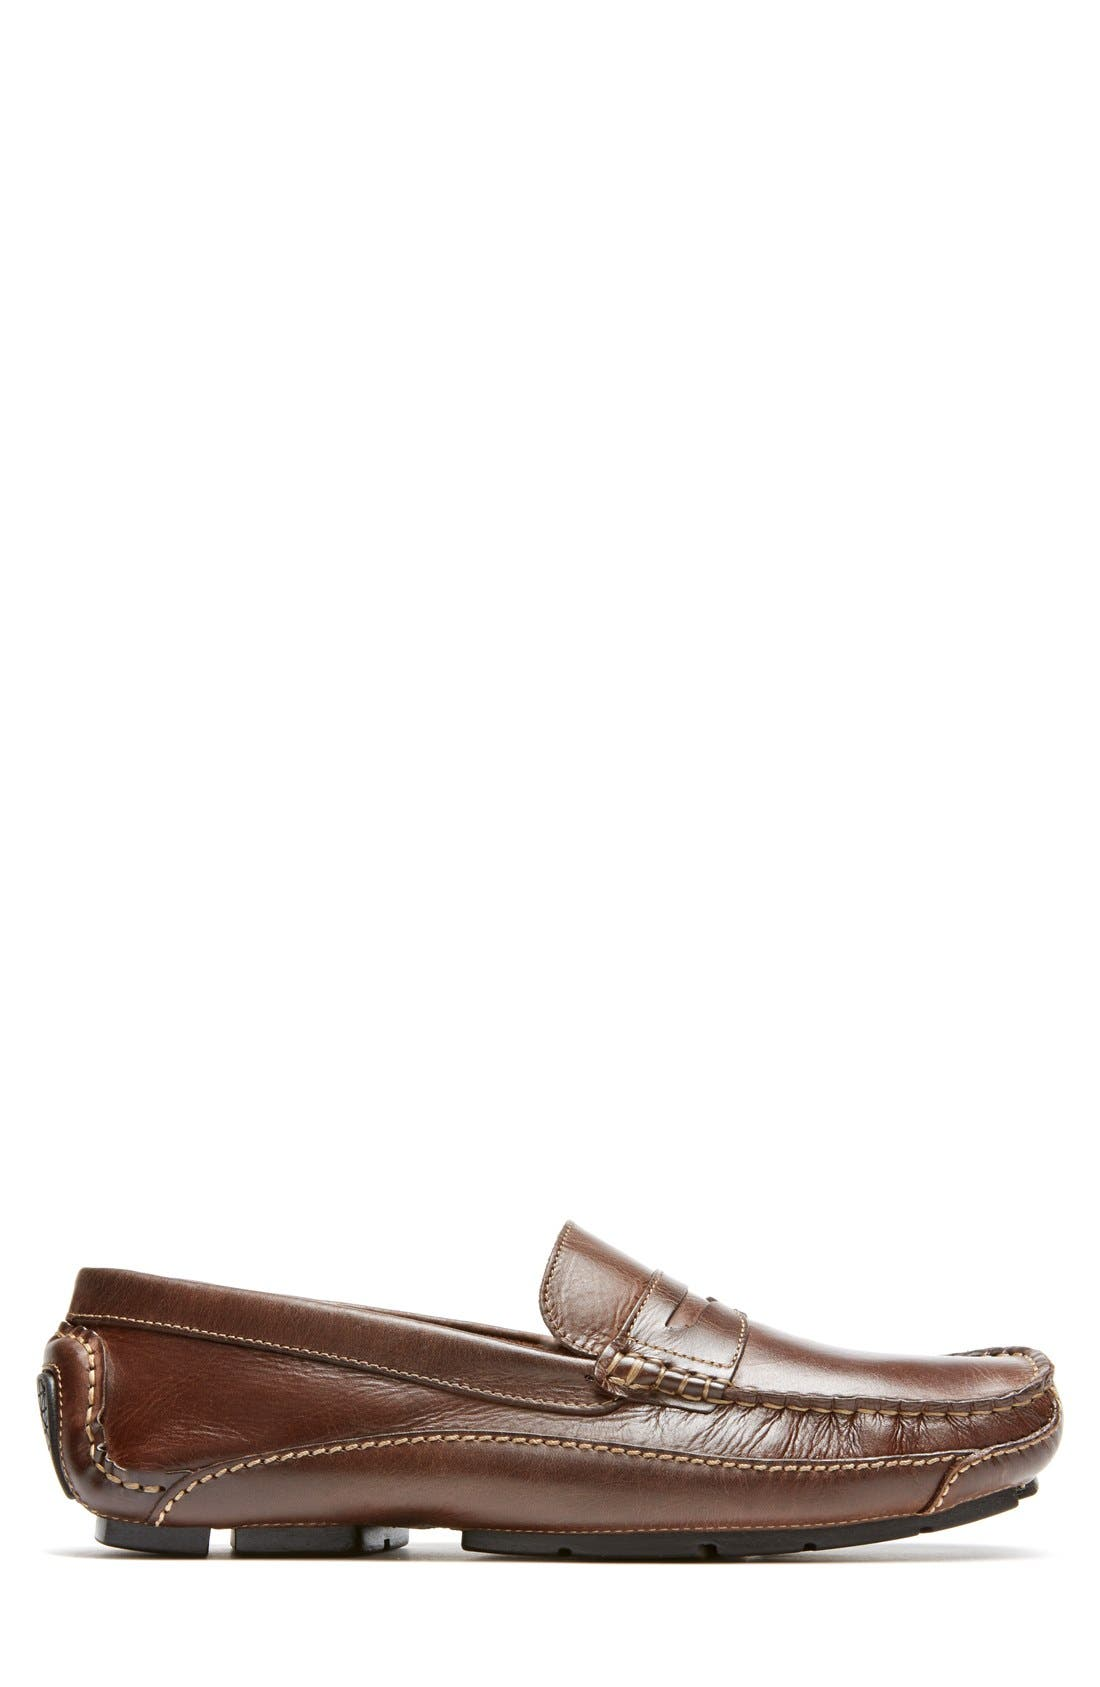 Luxury Cruise Penny Loafer,                             Alternate thumbnail 4, color,                             200